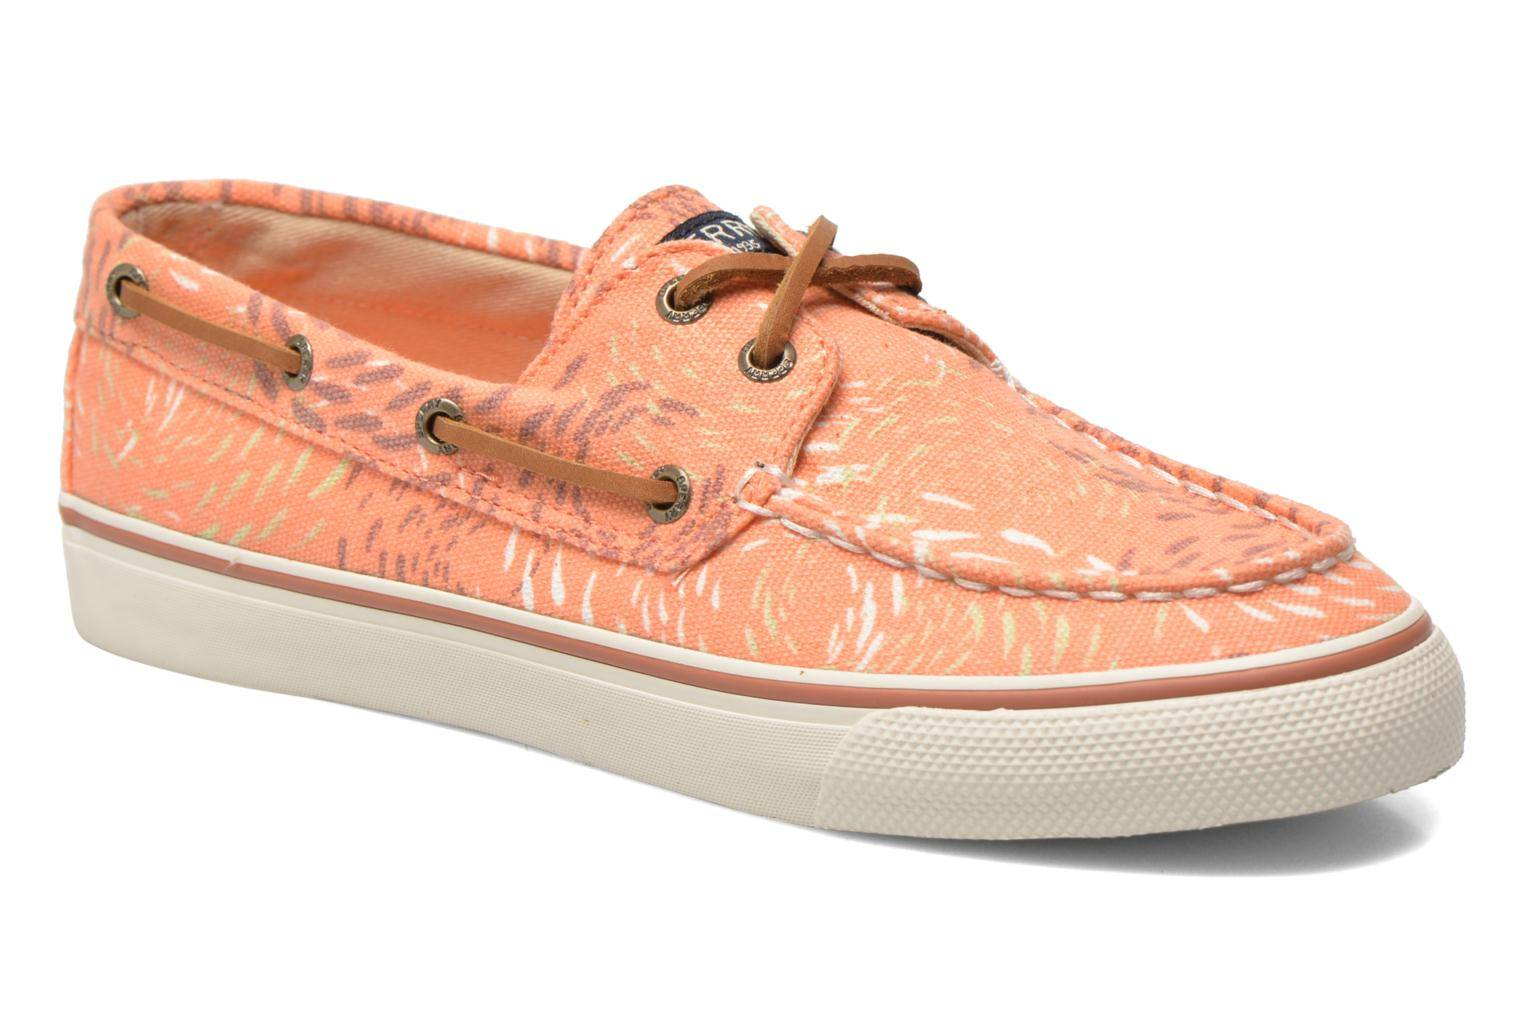 Sperry Top-Sider - Bahama Fish Circles by  - Nauhakengät Naisille  / Oranssi